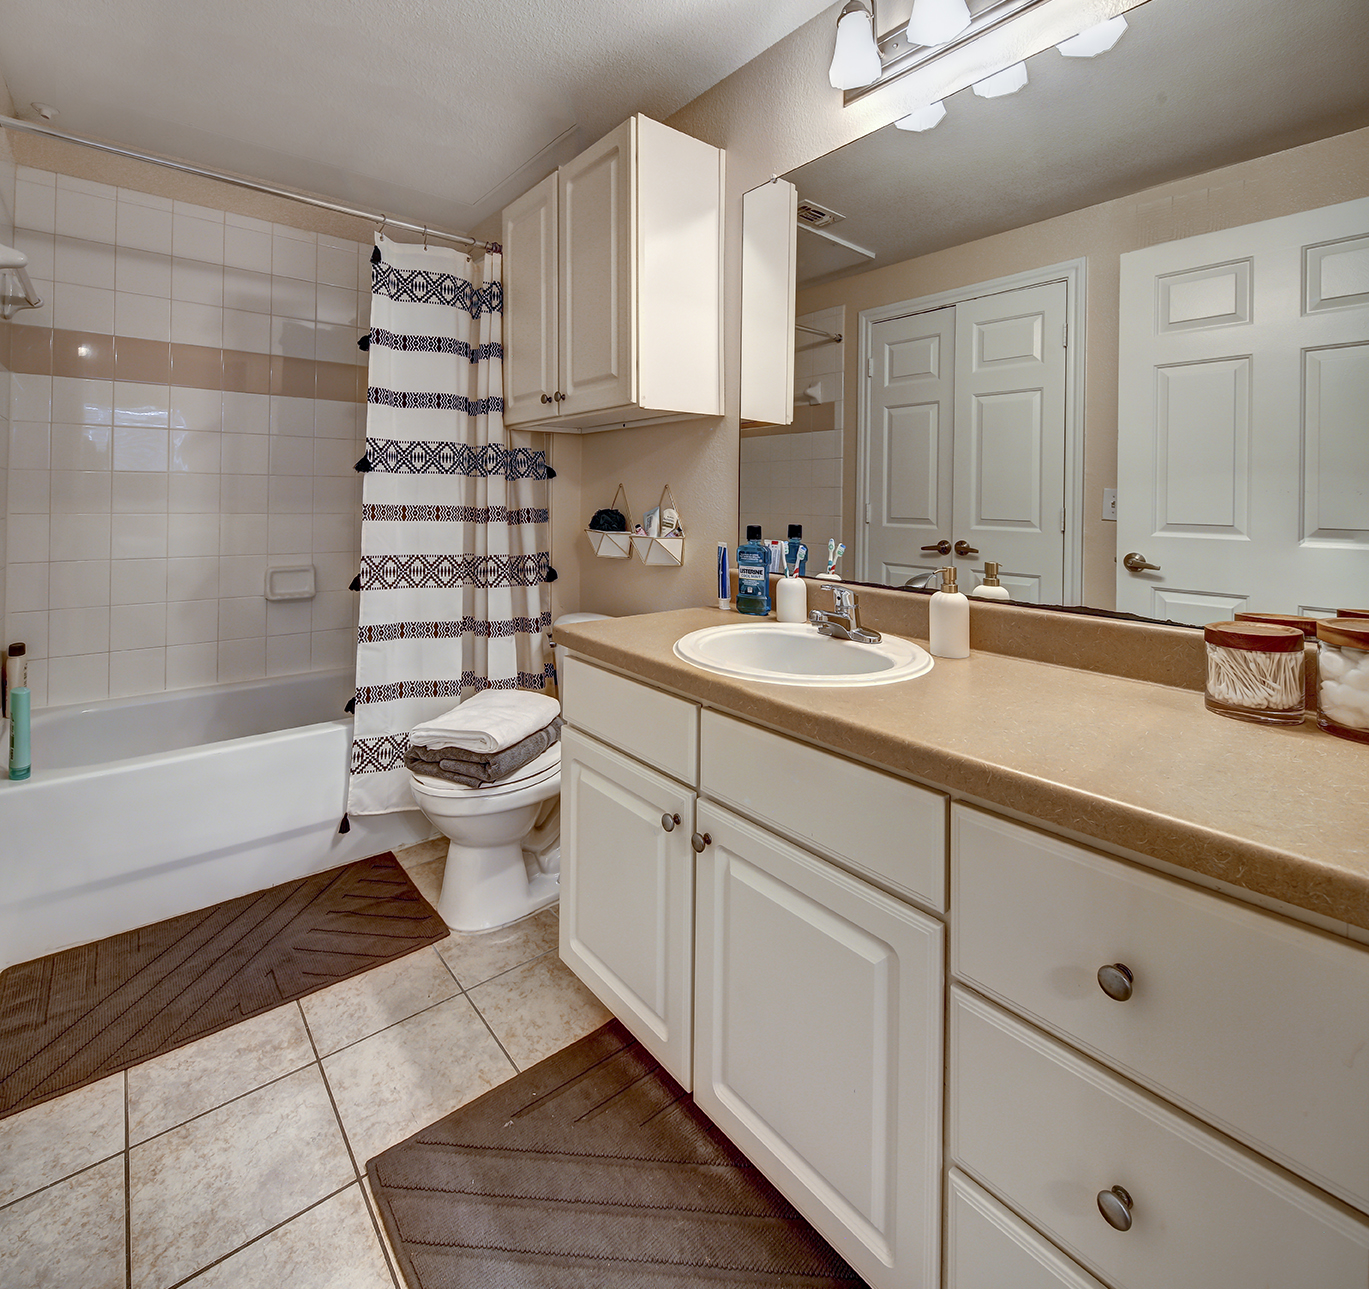 The block bathroom 11 479x451